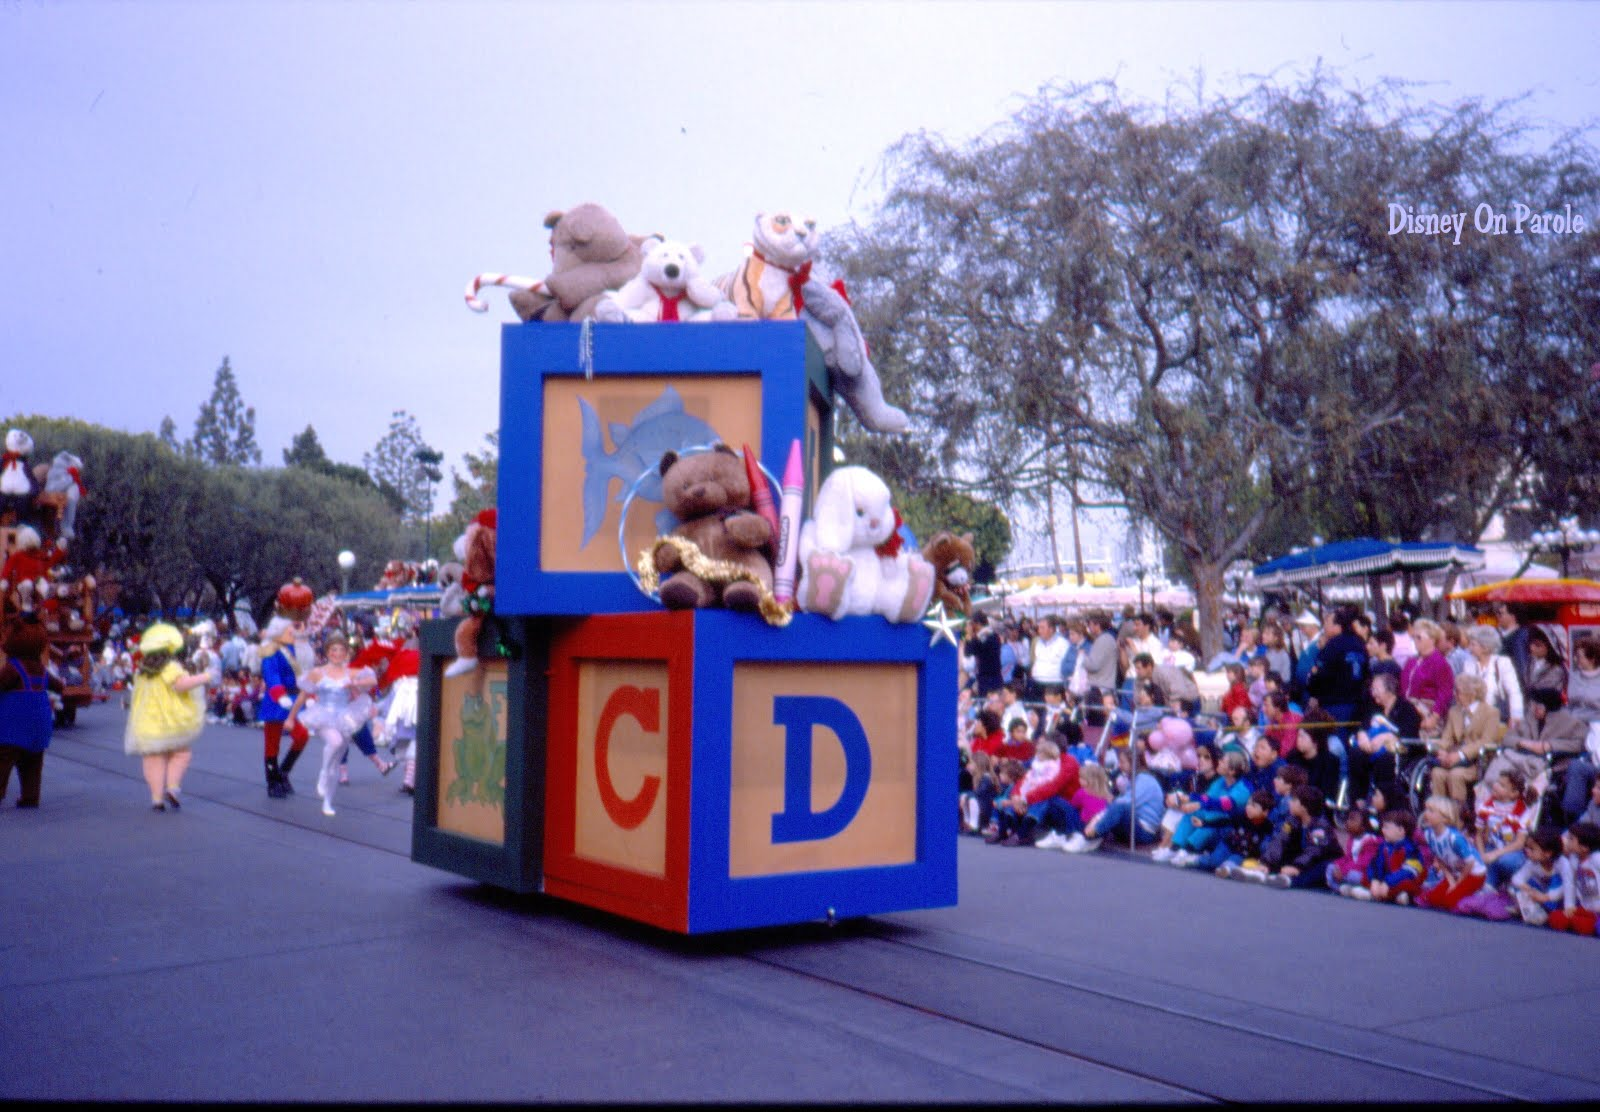 disneyland christmas parade 1987 the toy unit the stick horse in this pile of toys was used in the mouseketeer show that was on